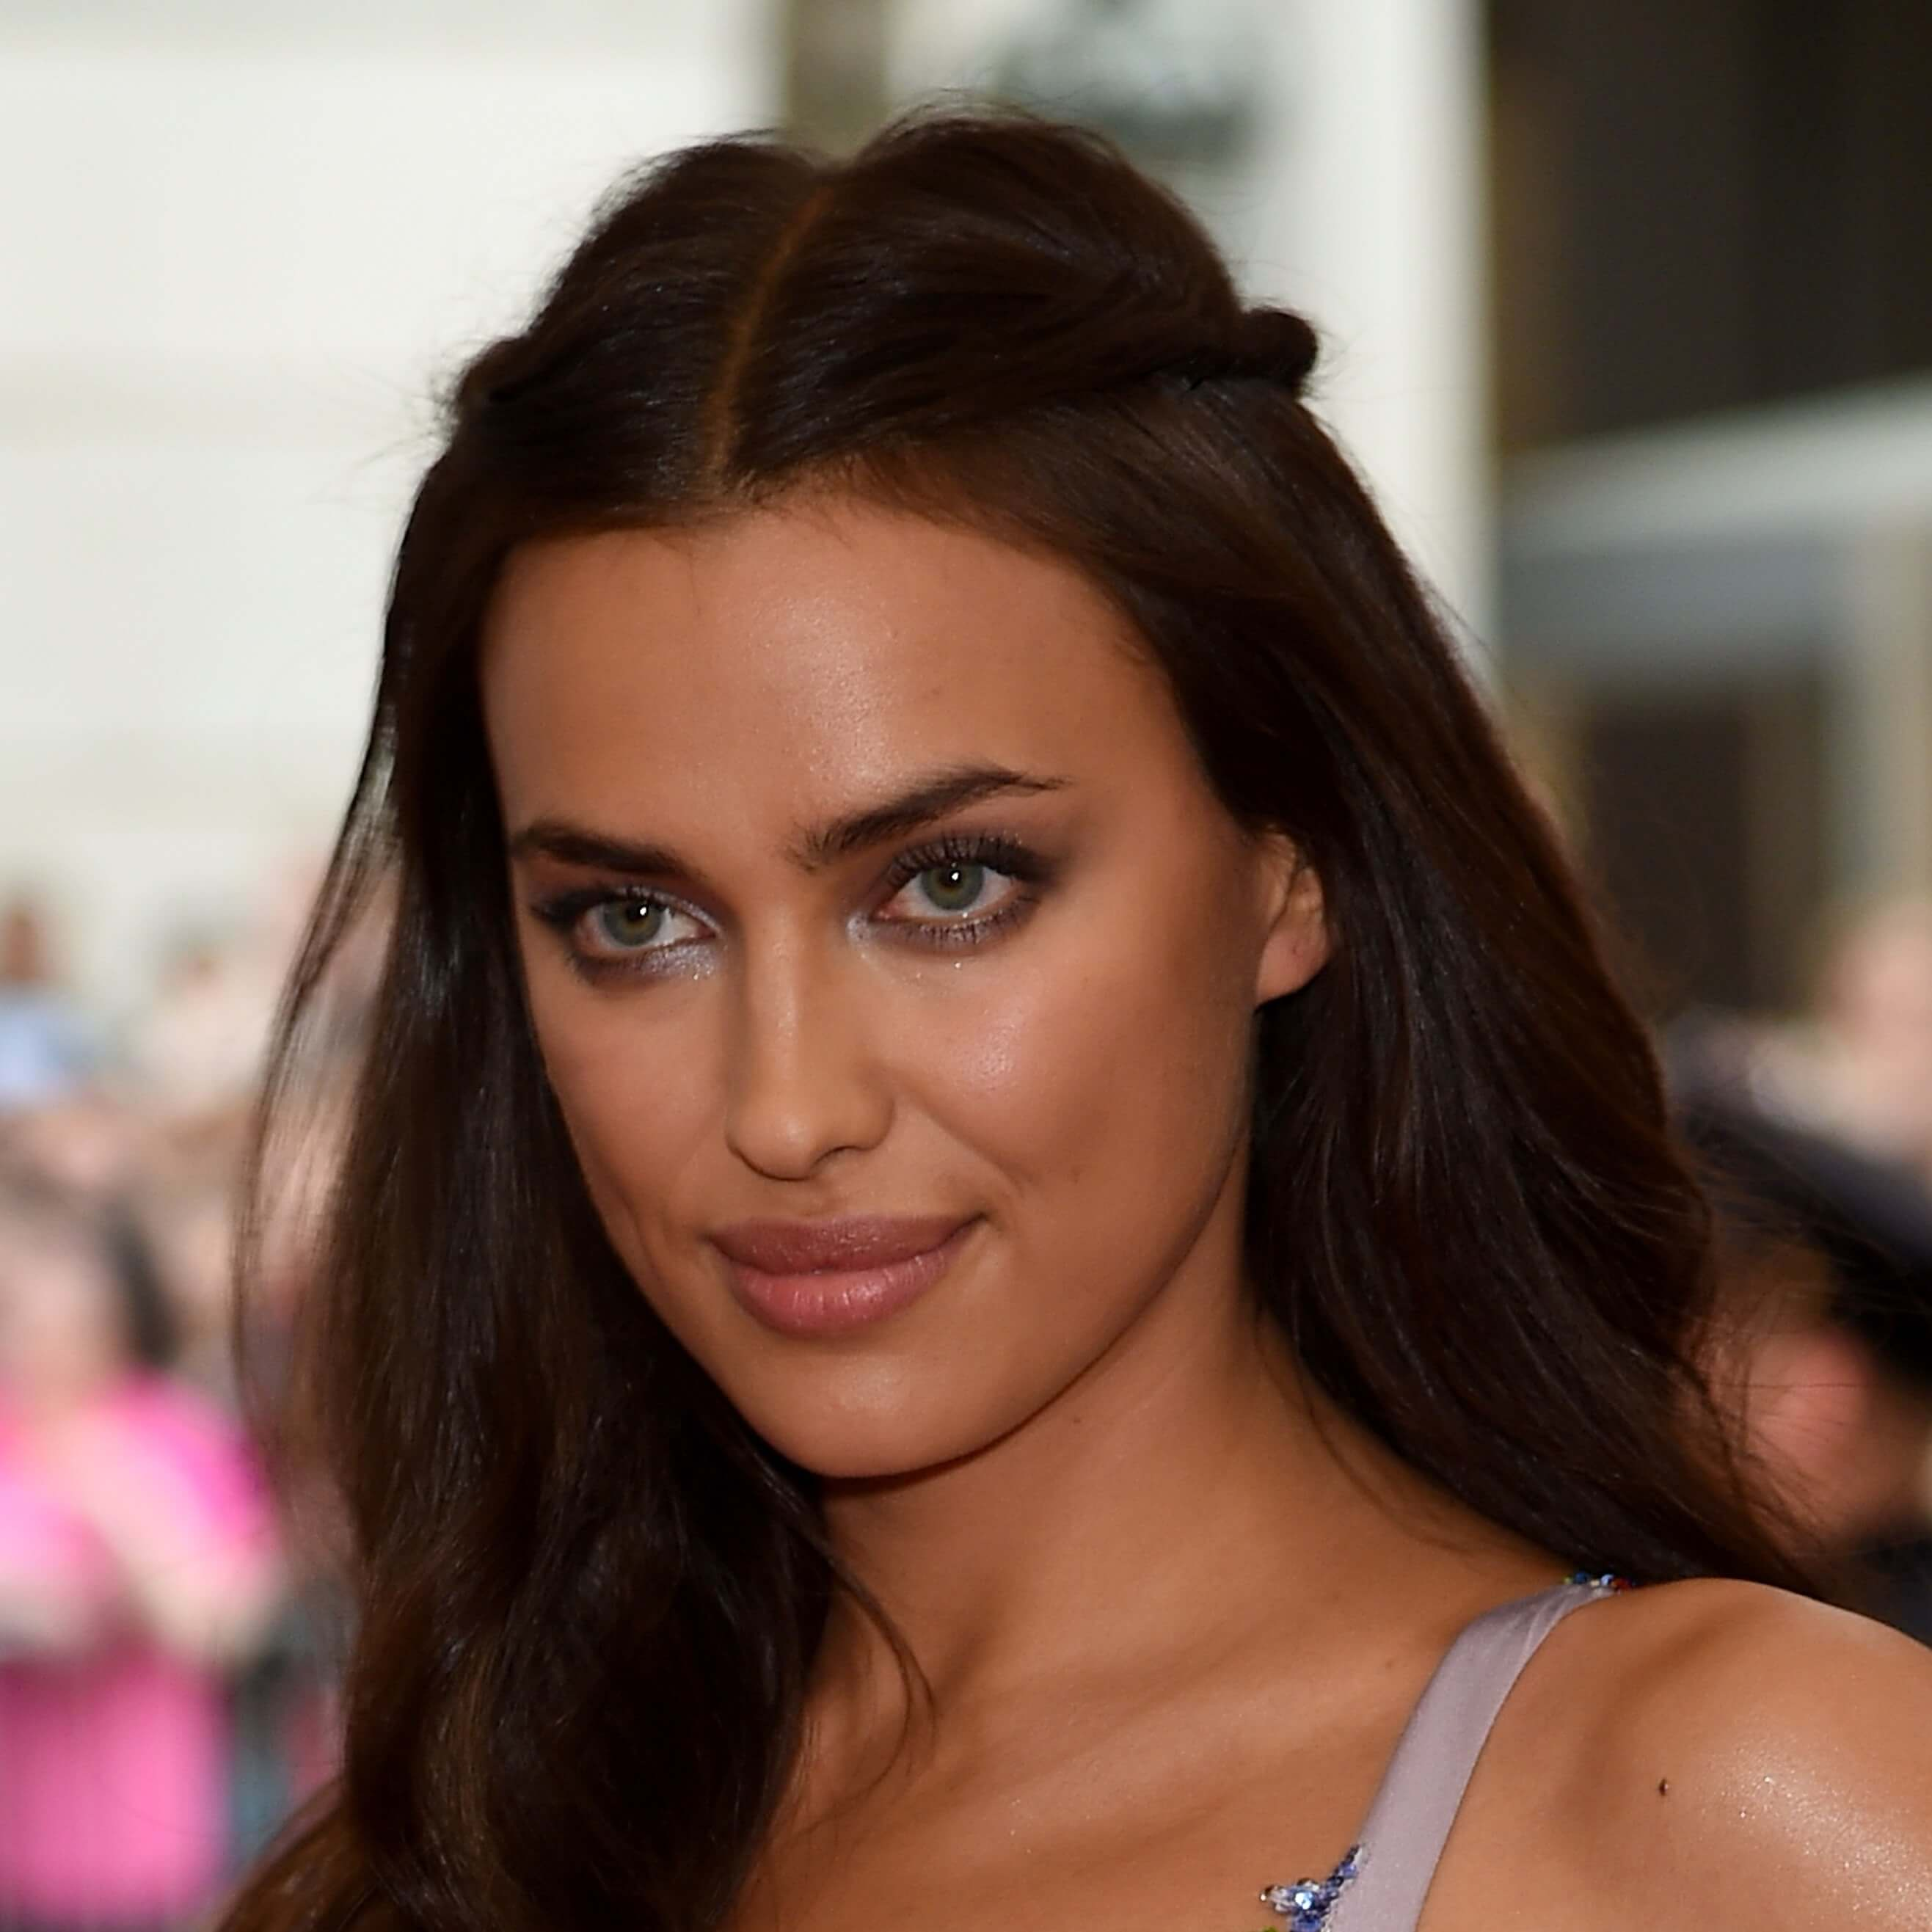 Irina Shayk pleased fans with spicy photos 04/09/2016 74